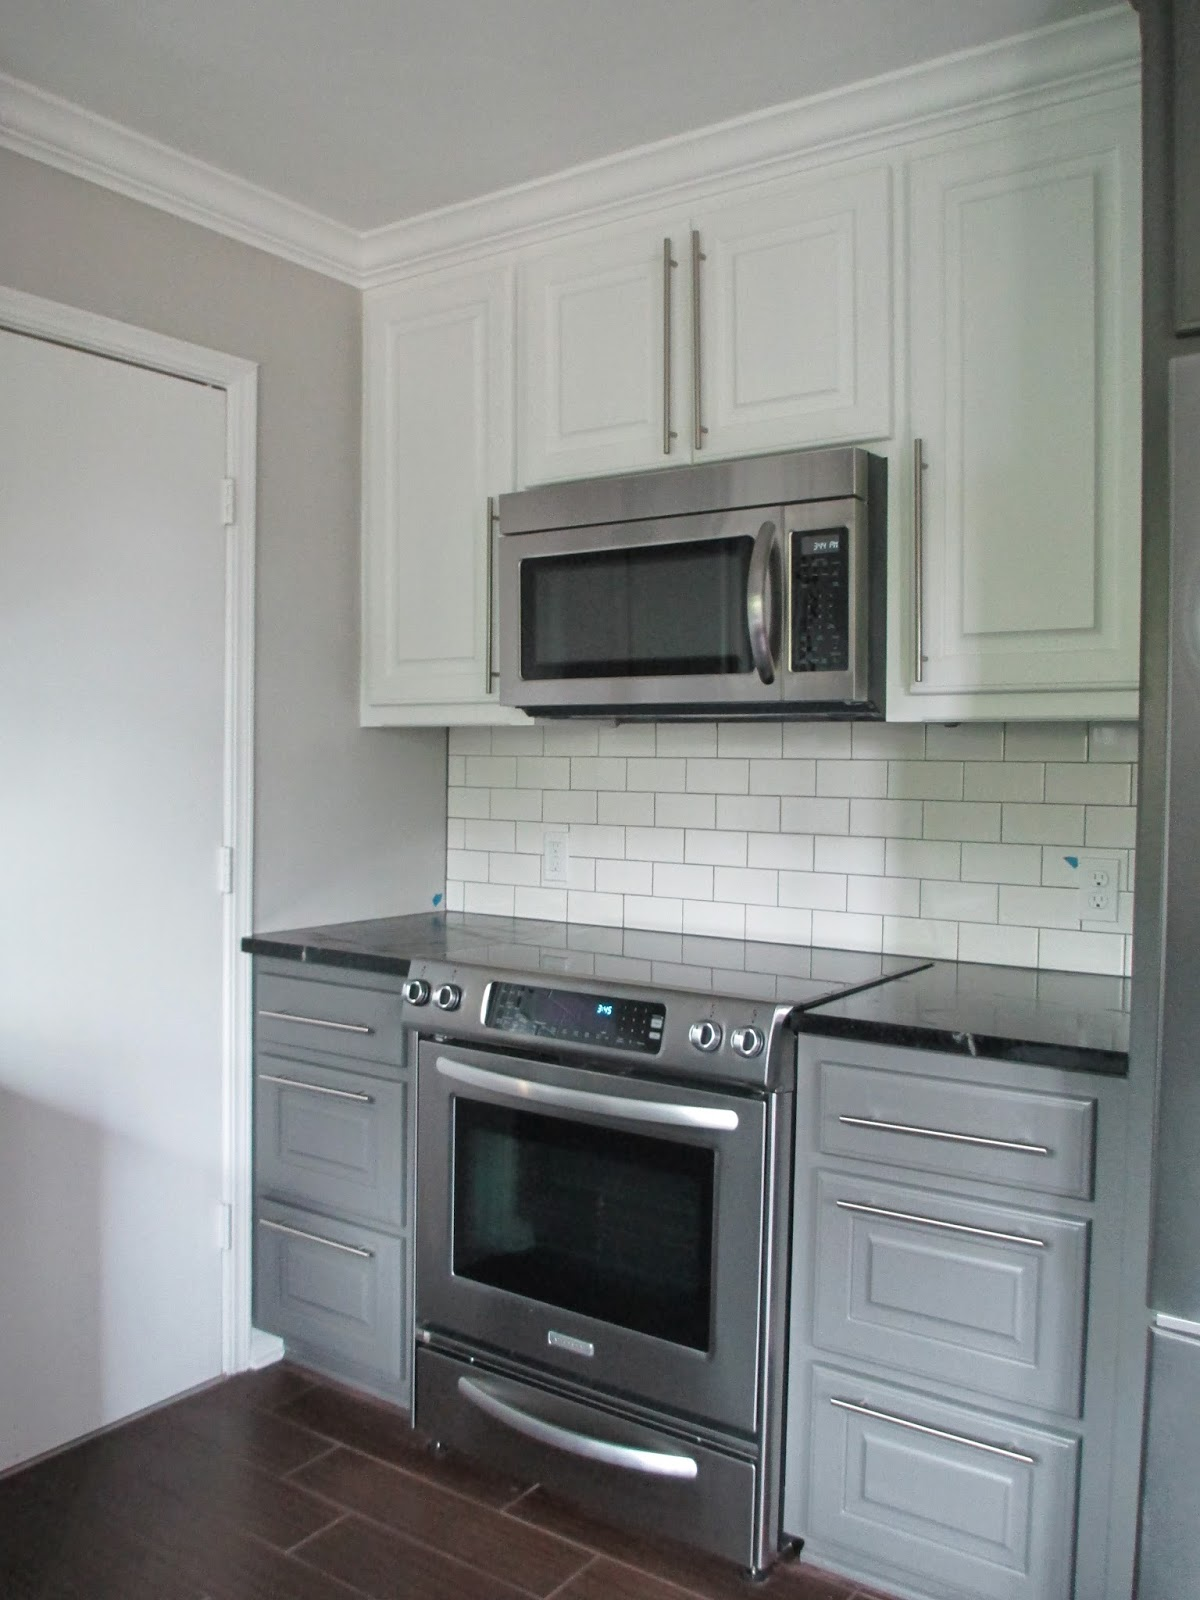 Benjamin Moore on the lower cabinets, and white on the upper cabinets